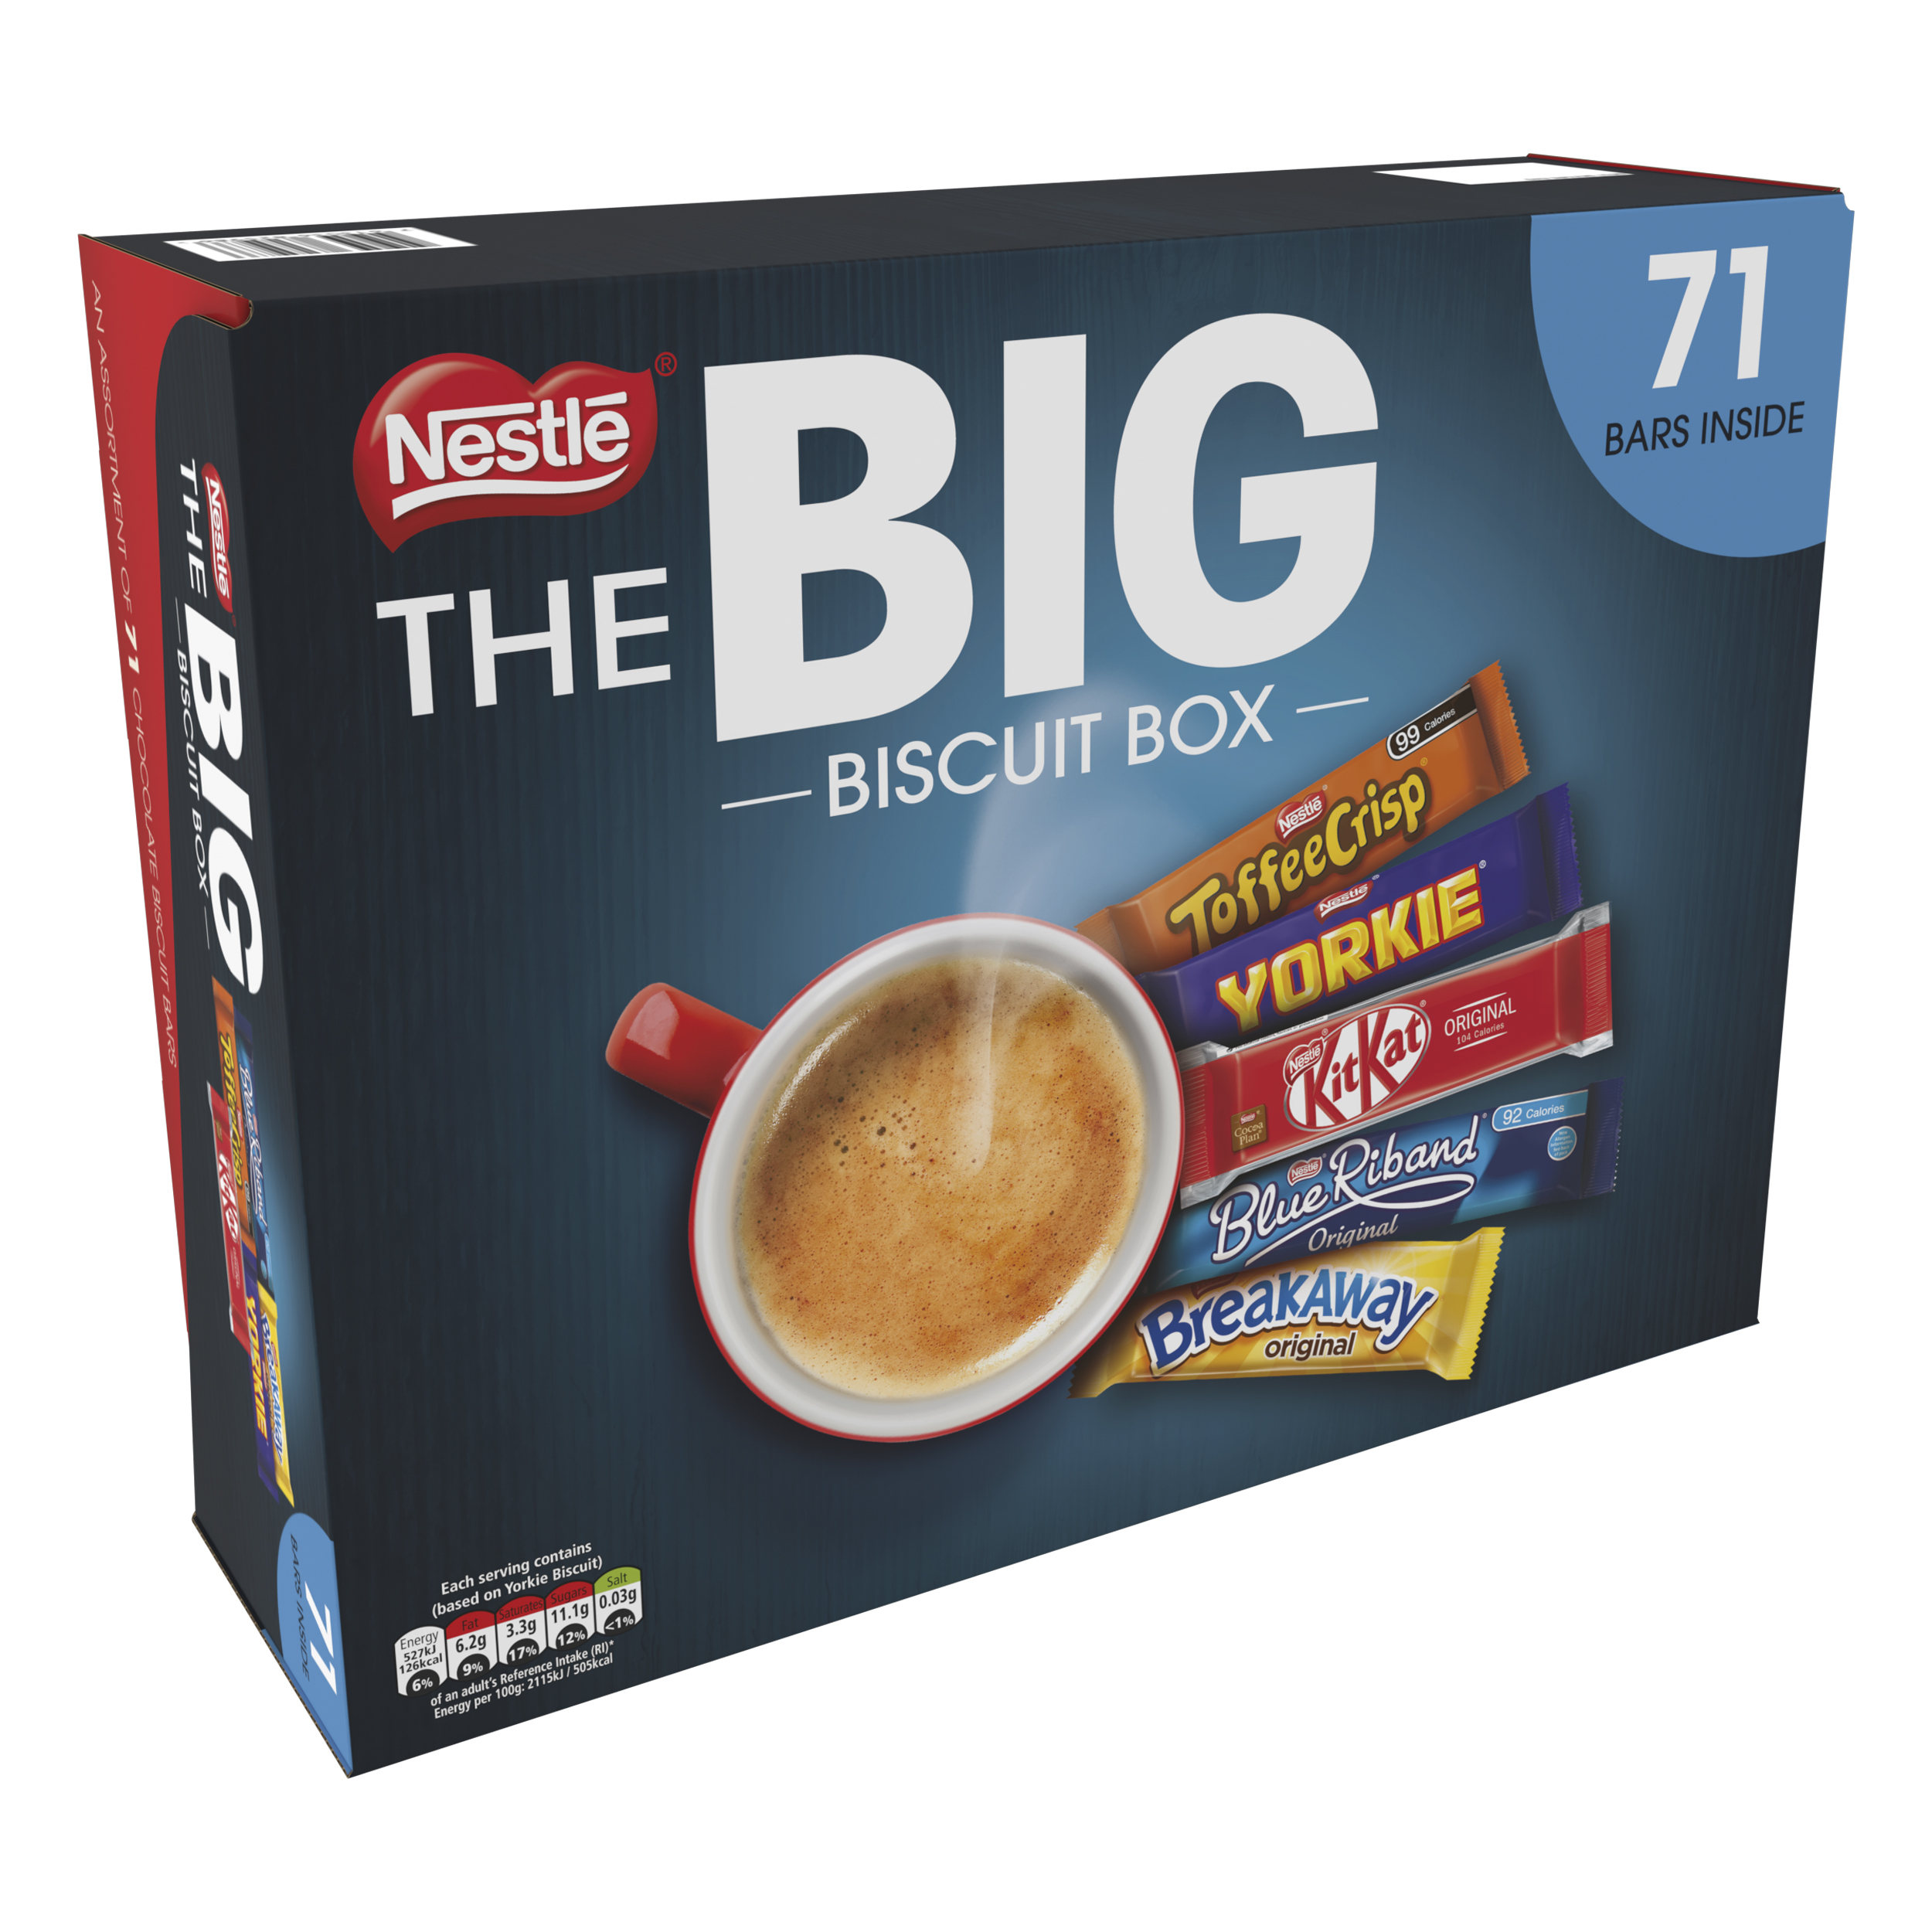 Biscuits Nestle Big Chocolate Box Five Assorted Biscuit Bars Ref 12391006 [Pack 71]